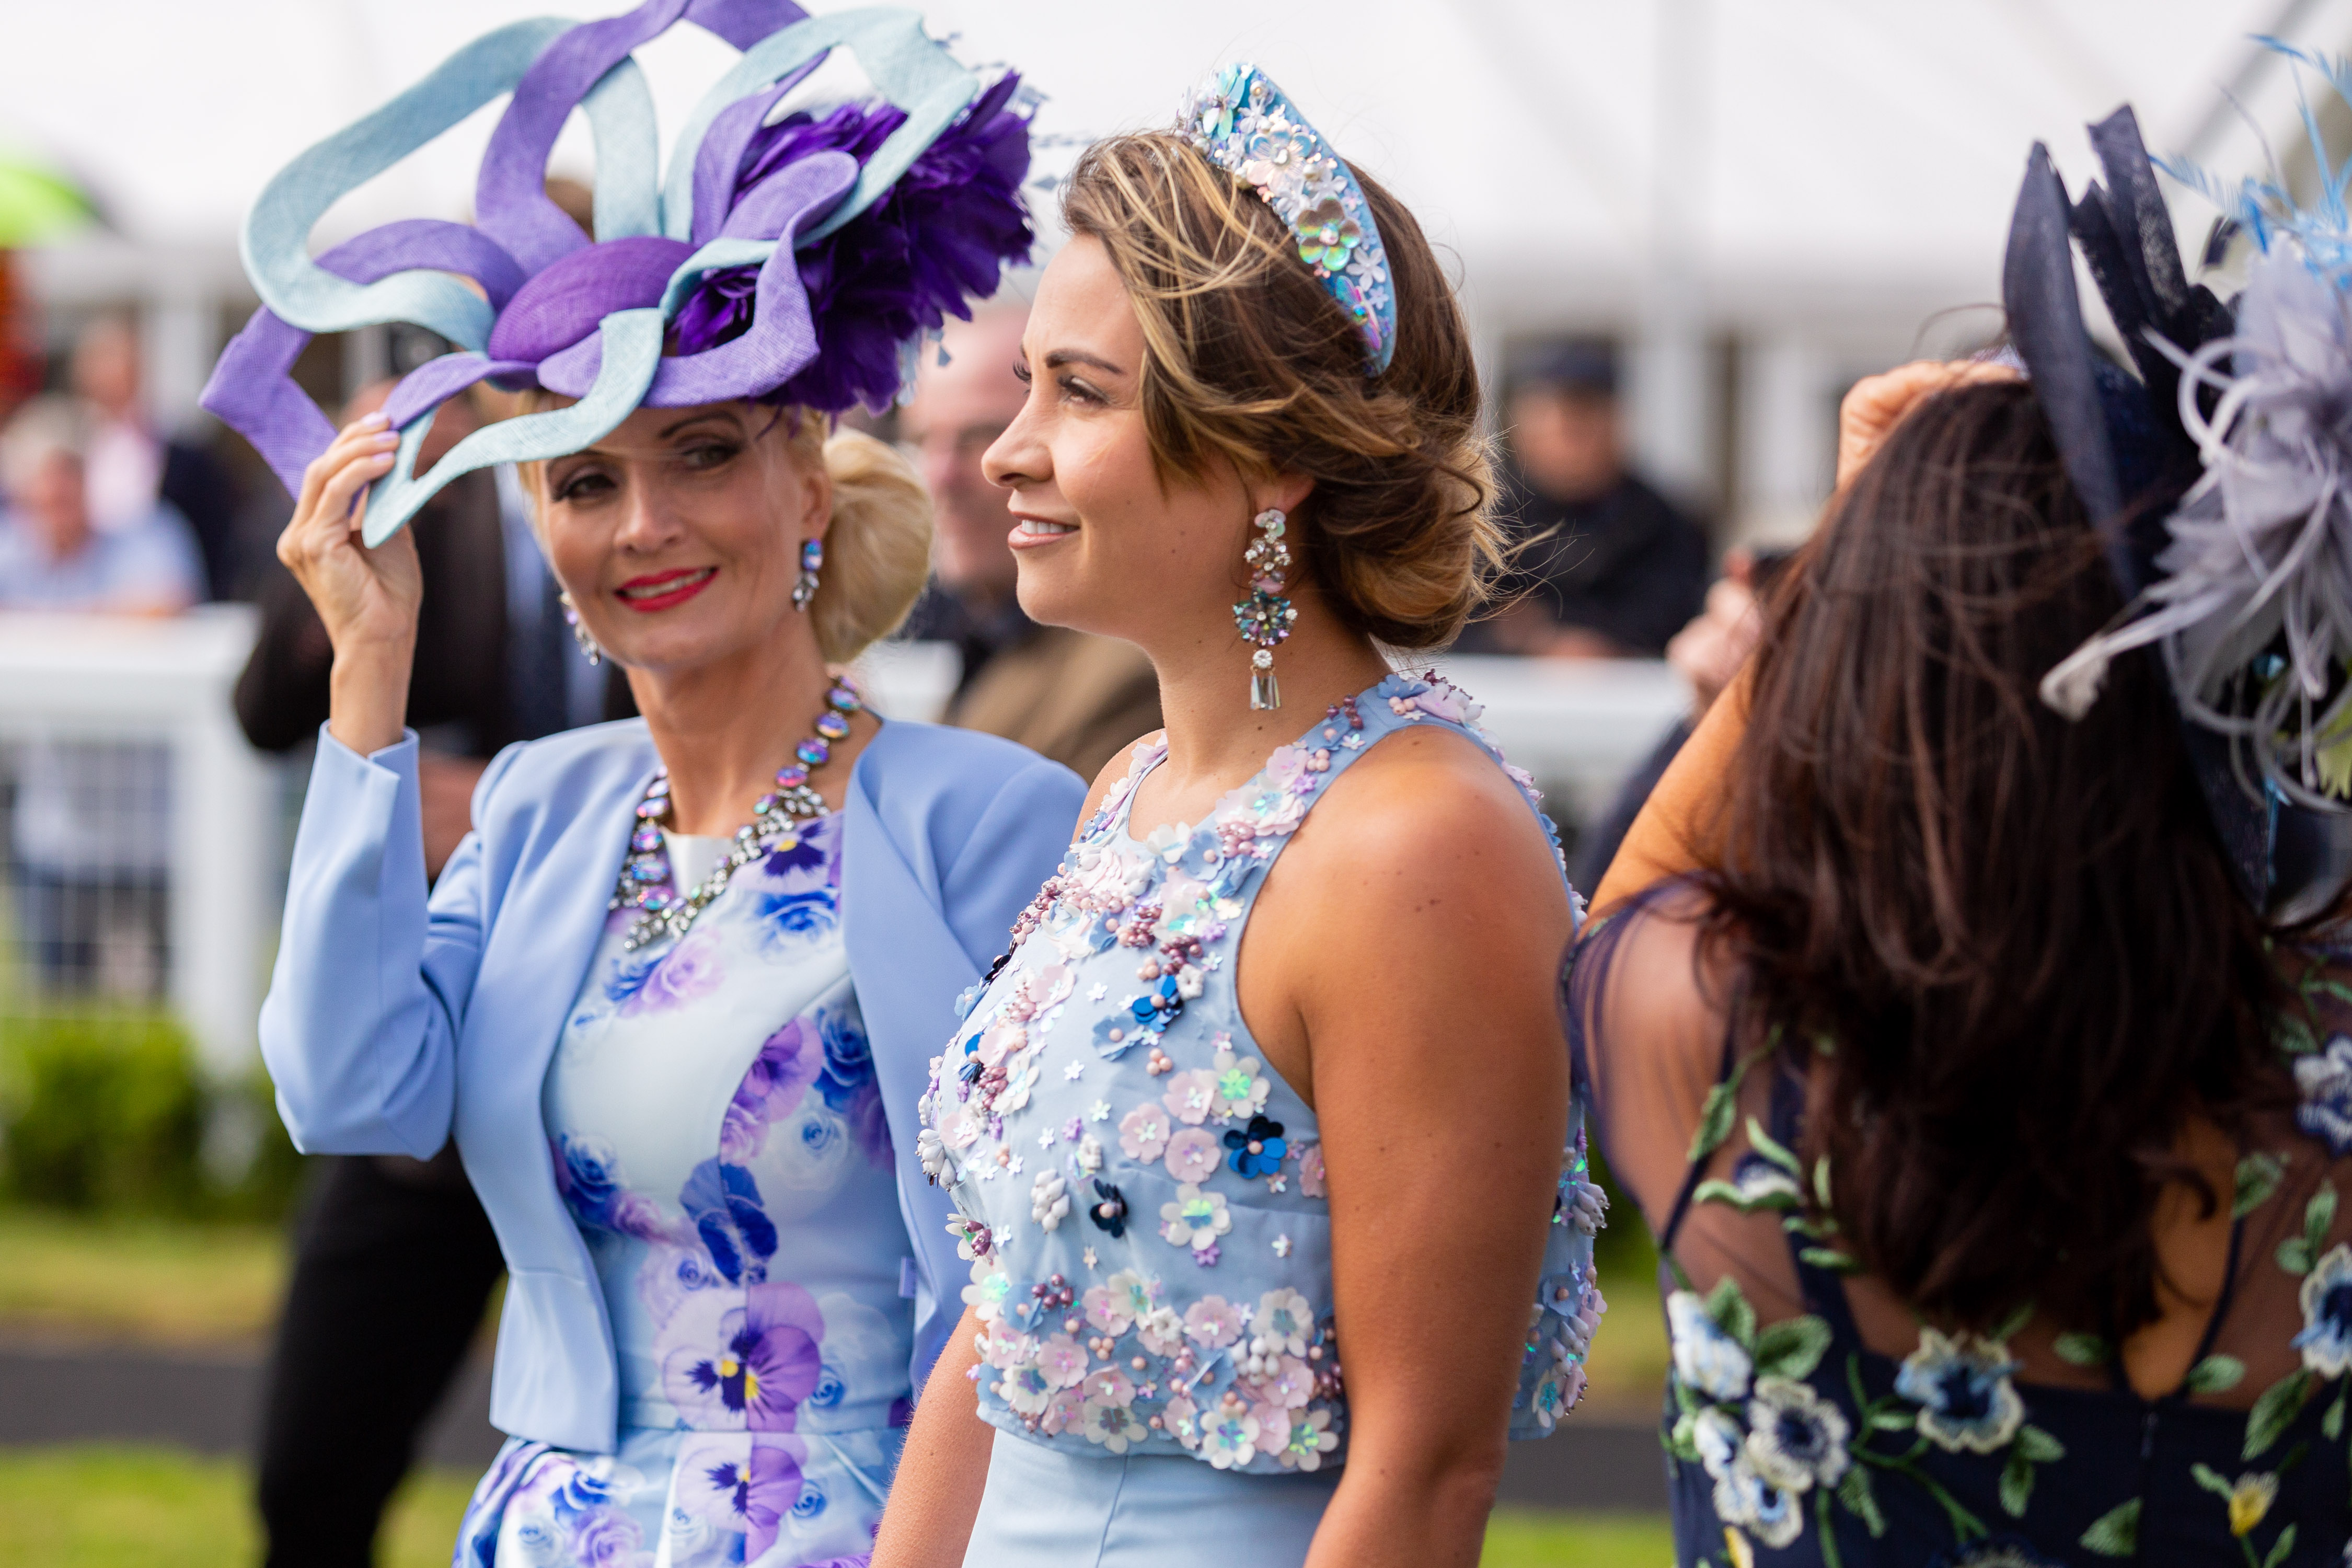 Record Crowd for the Bath Racecourse Ladies' Day